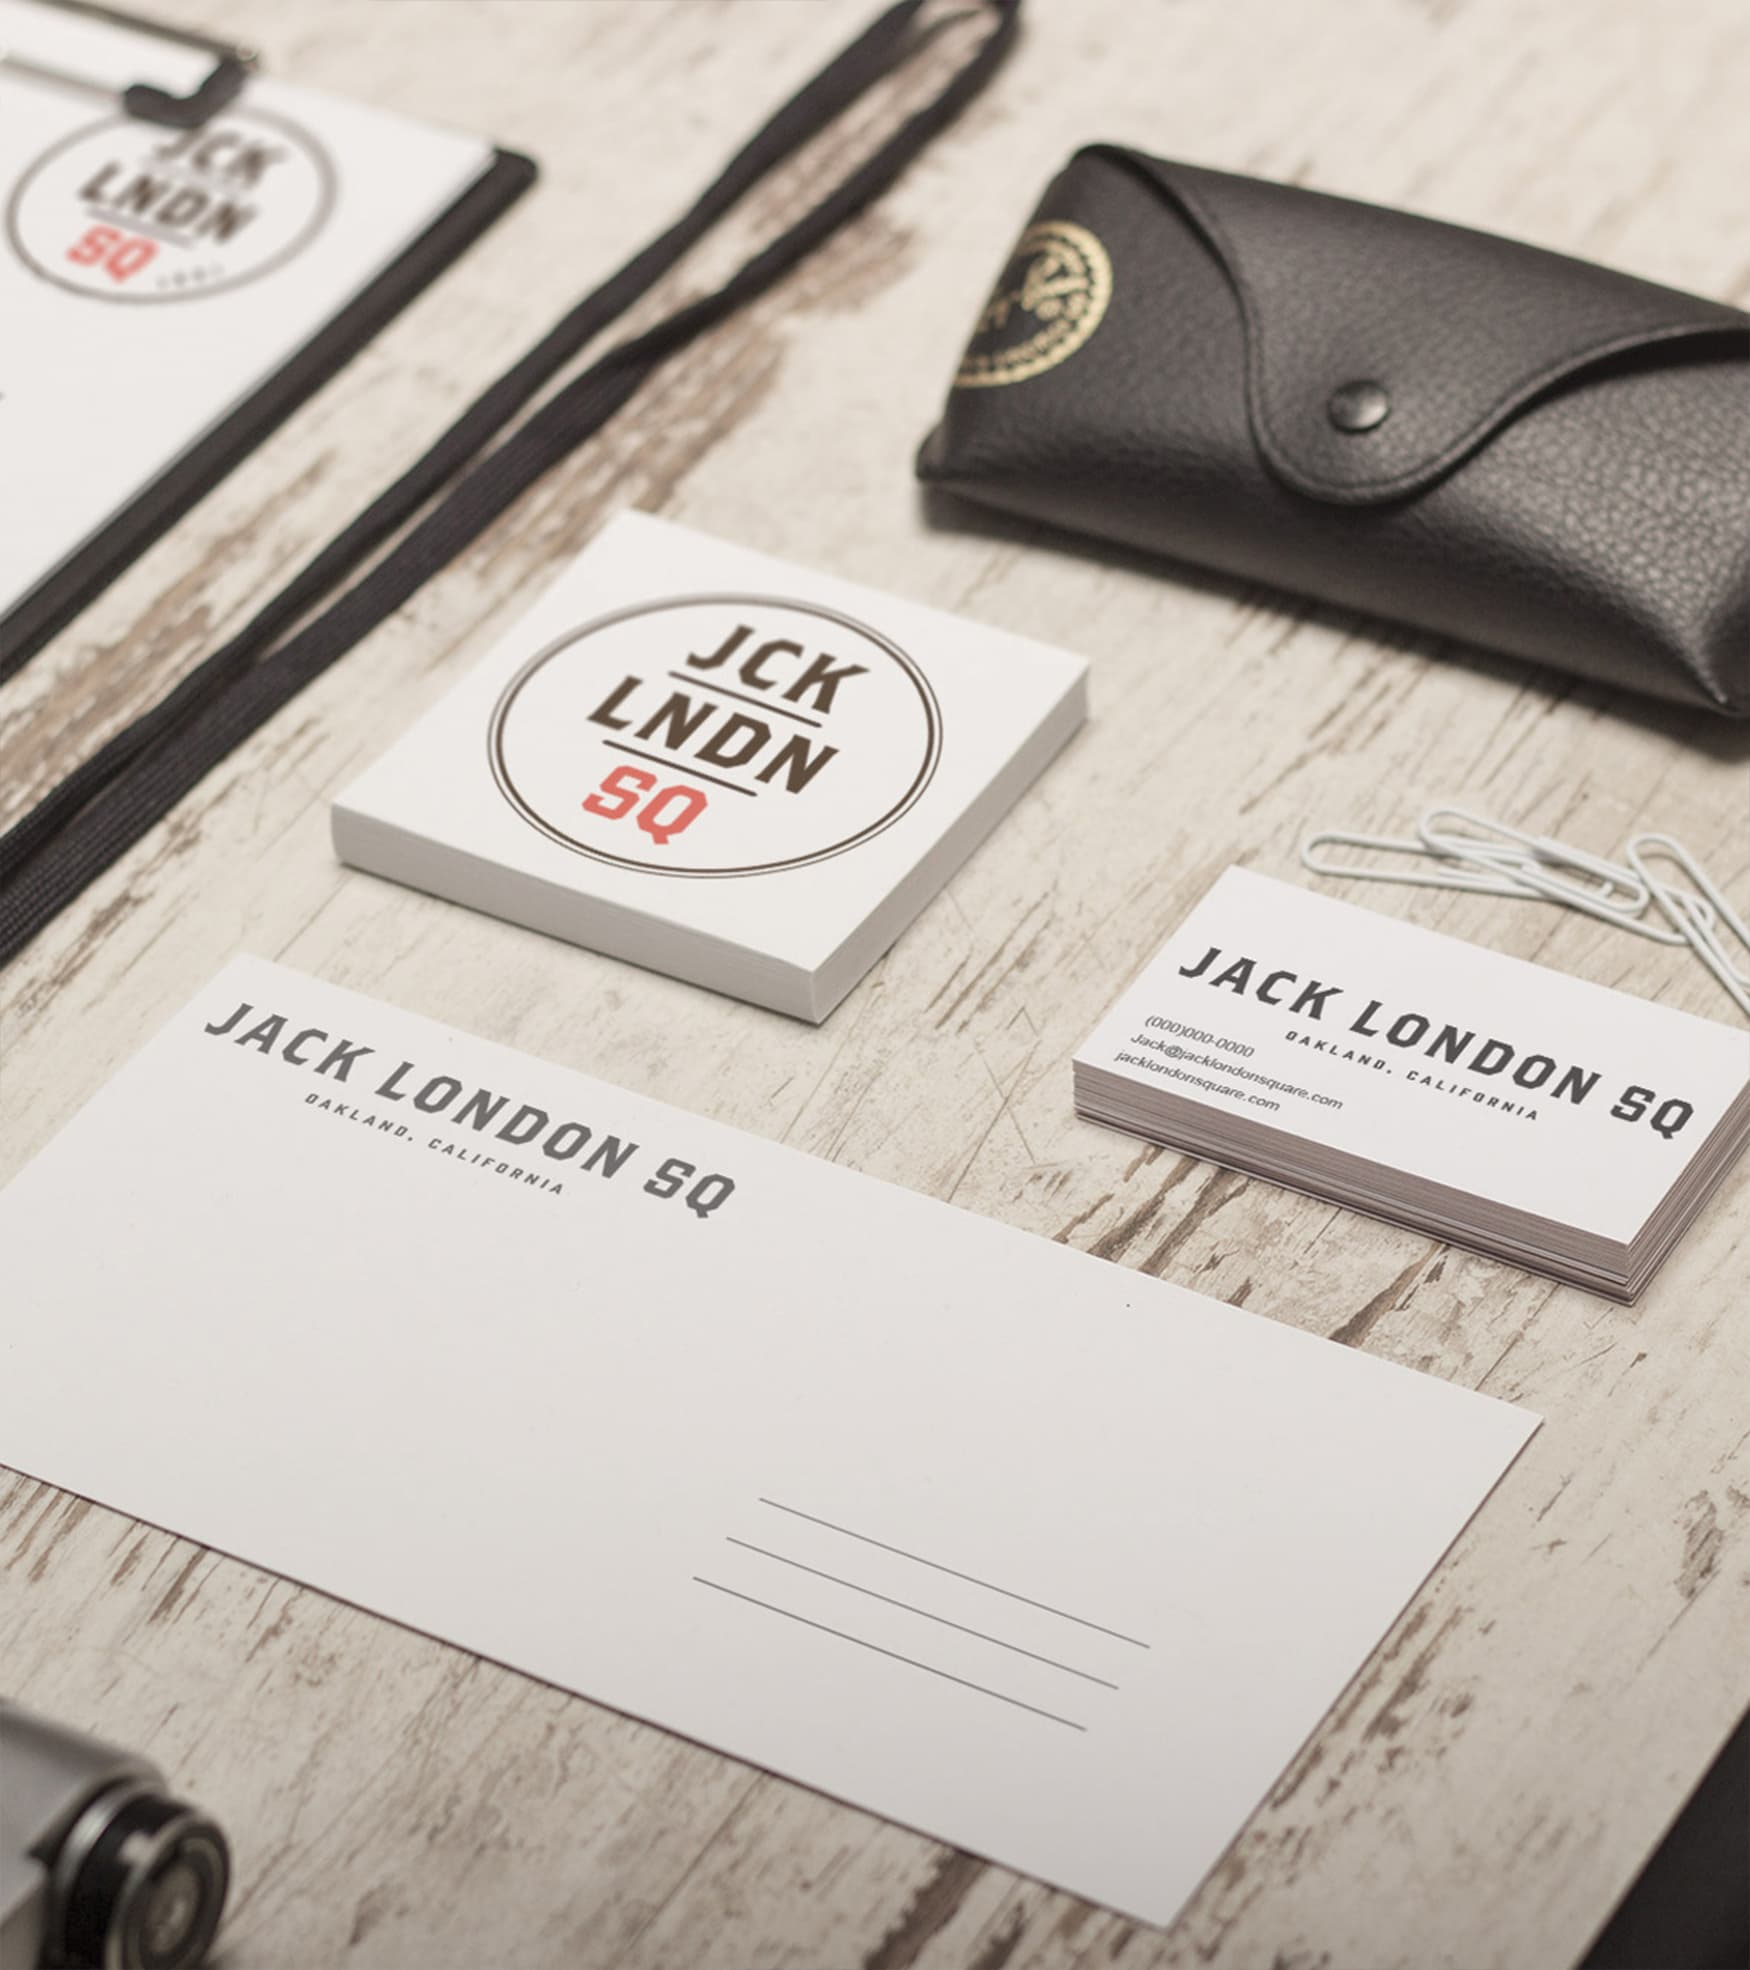 Jack London Square stationary mock up branding.